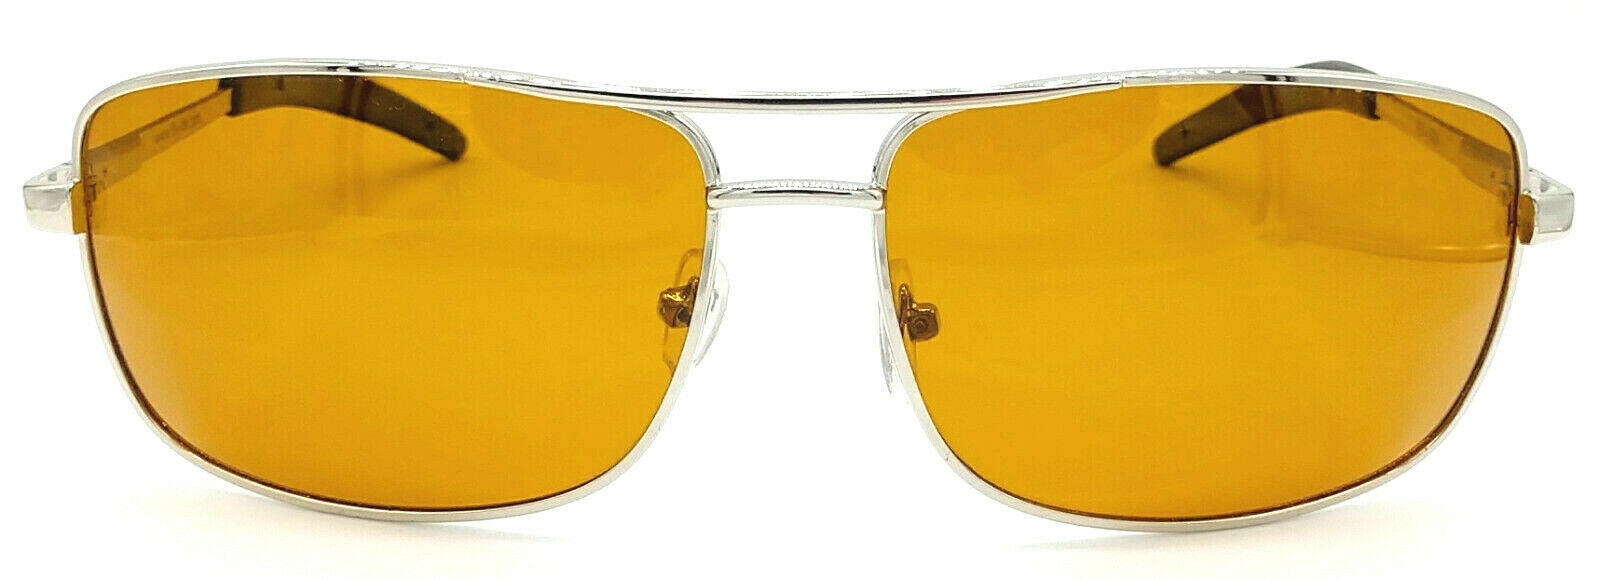 FLY-DEF High-Definition Polarized Fishing sunglasses Gold Lens Metal Rectangle Aviator